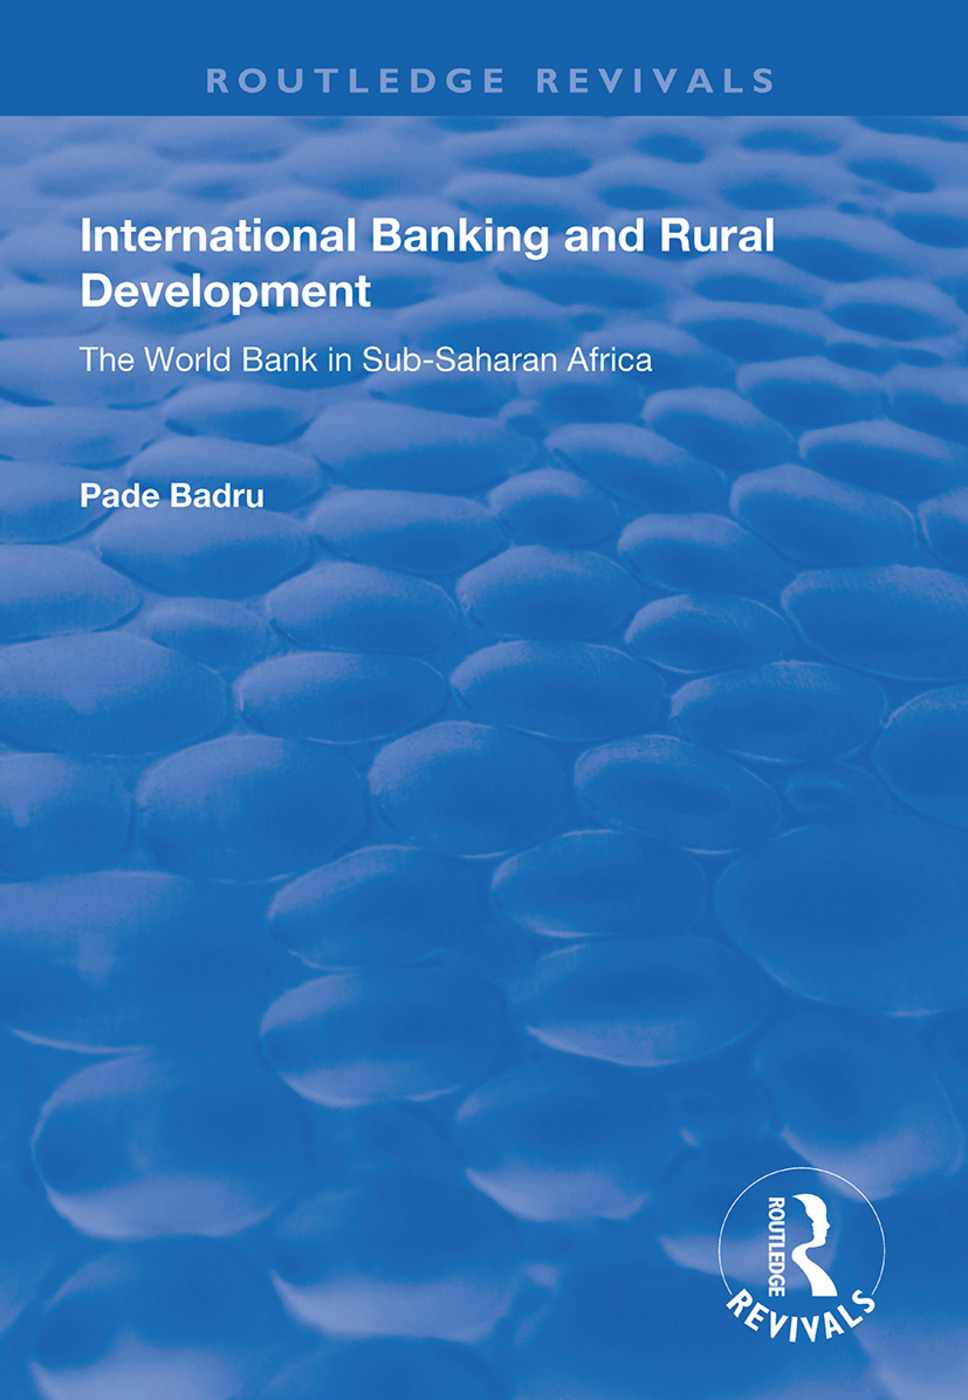 International Banking and Rural Development: The World Bank in Sub-Saharan Africa book cover